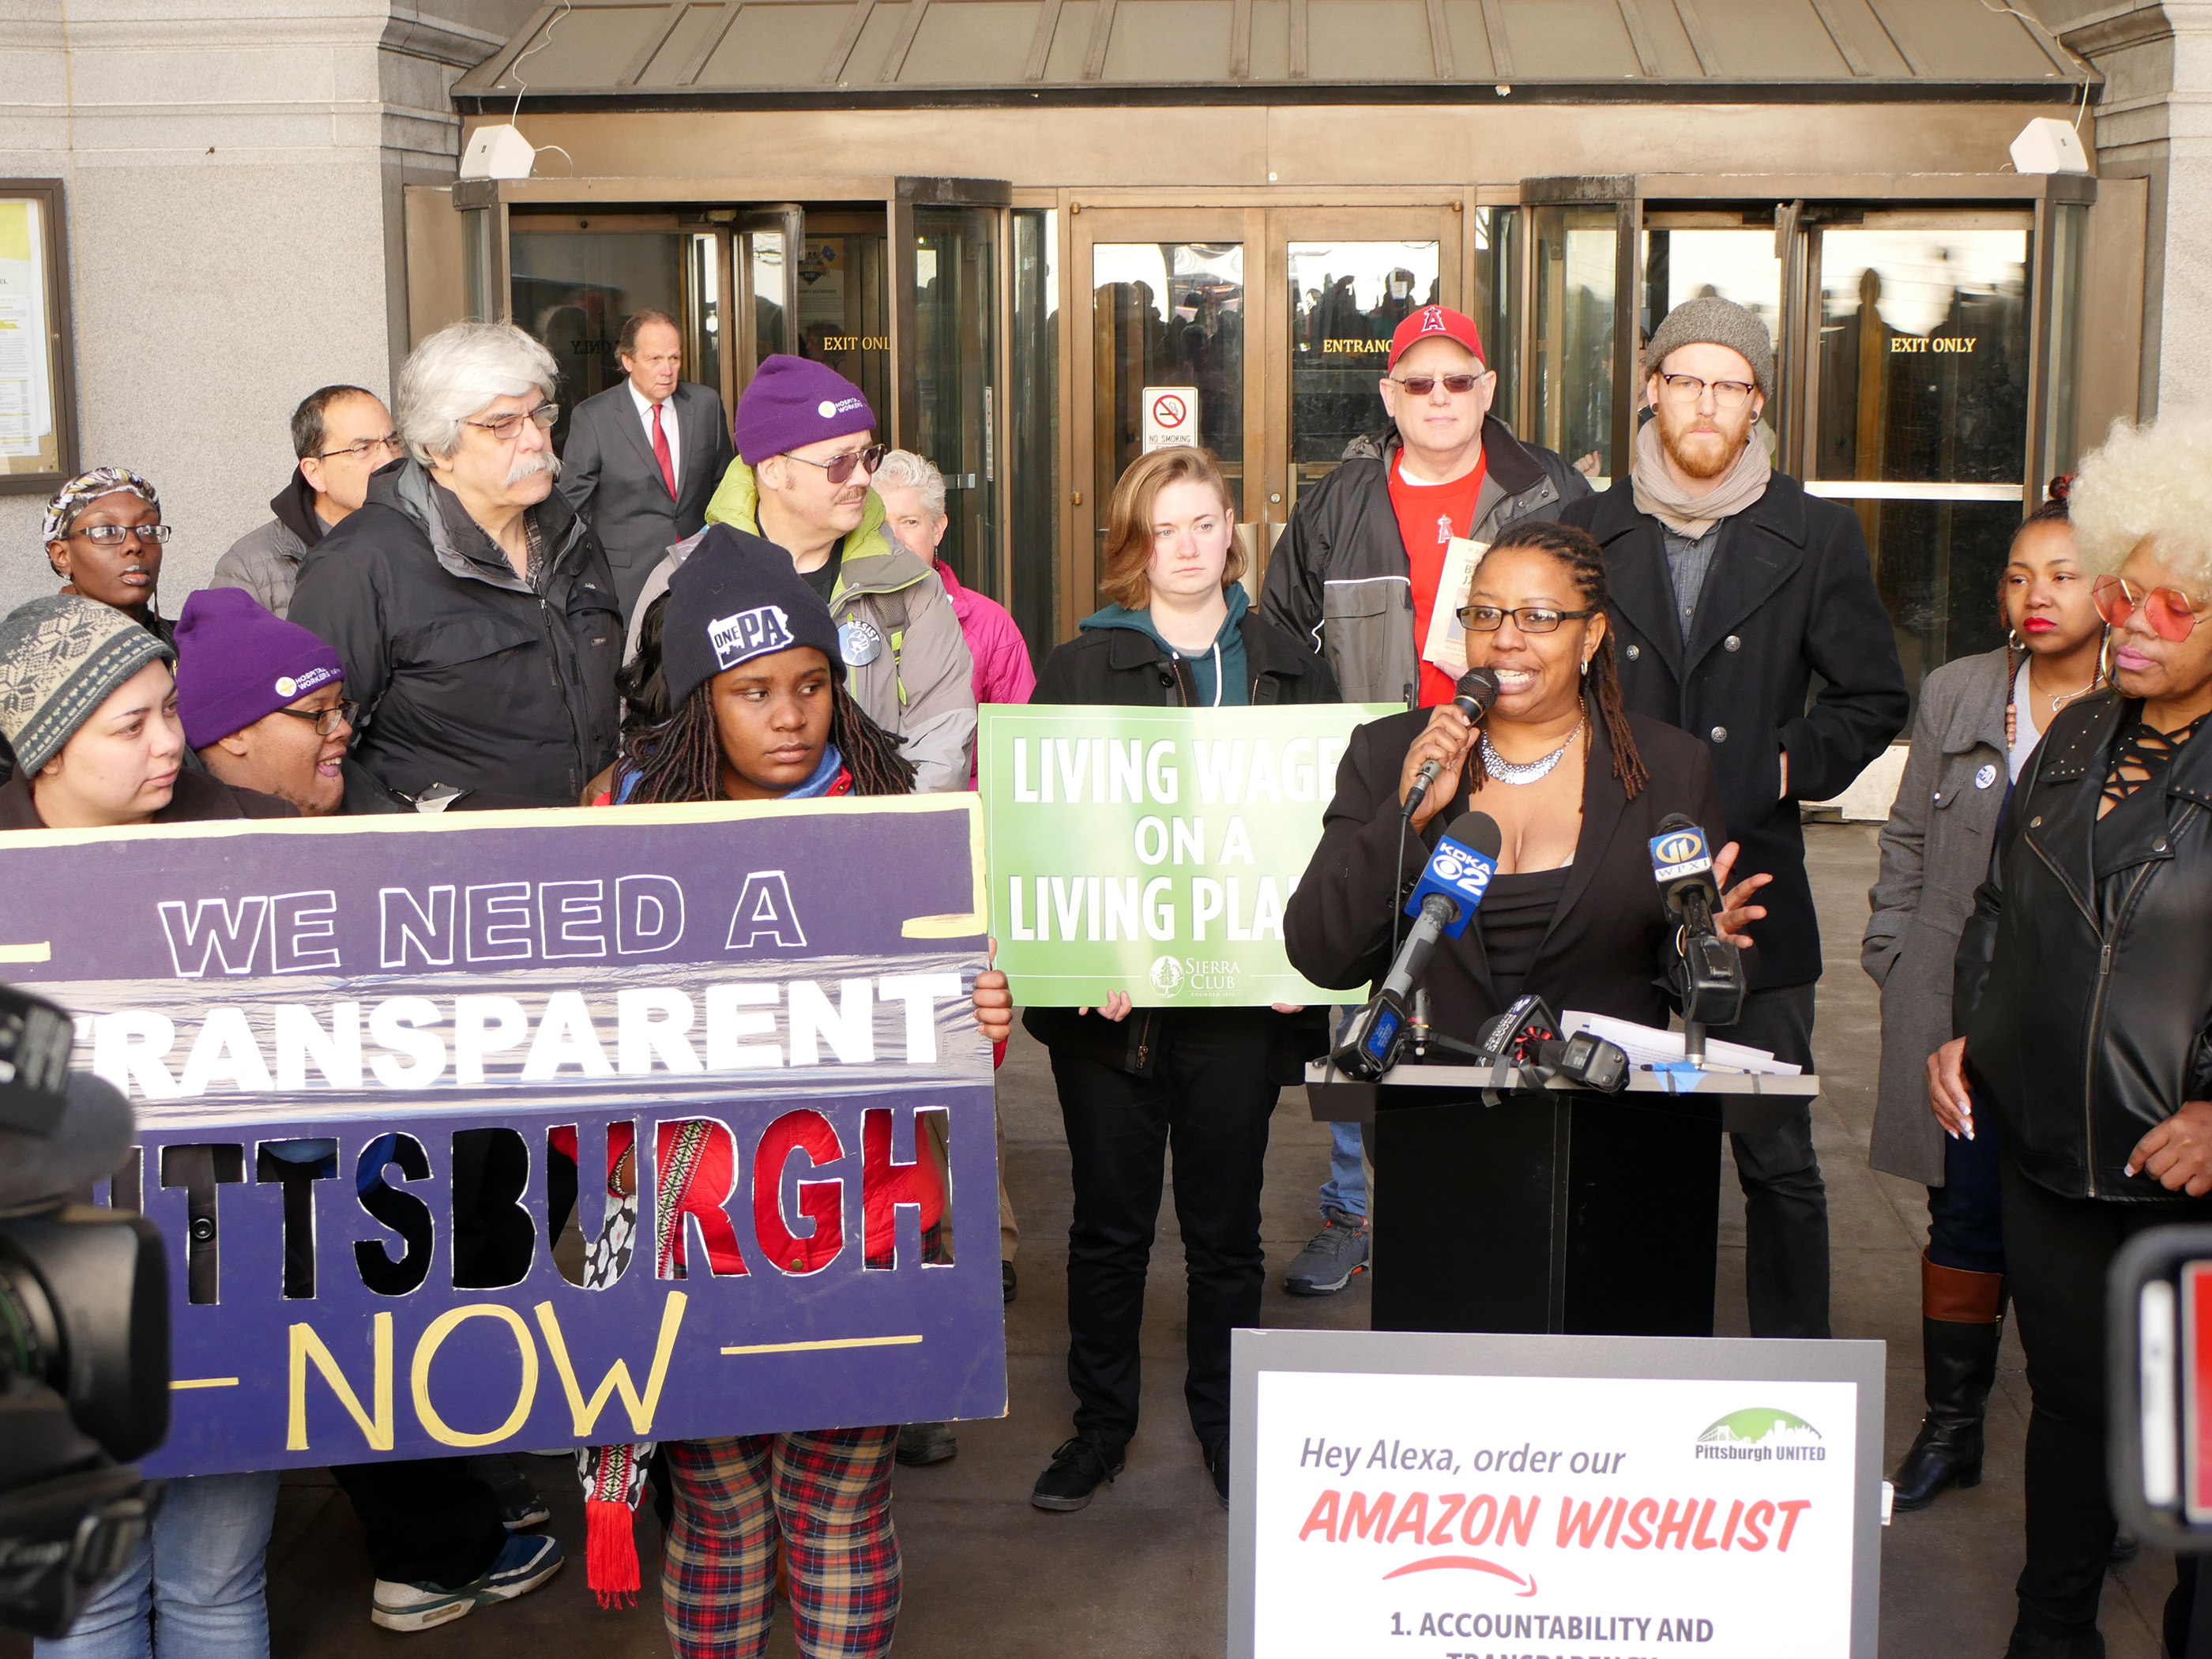 Brandi Fisher of Pittsburgh United speaks at a rally demanding more transparency in HQ2 bid, April 11, 2018.